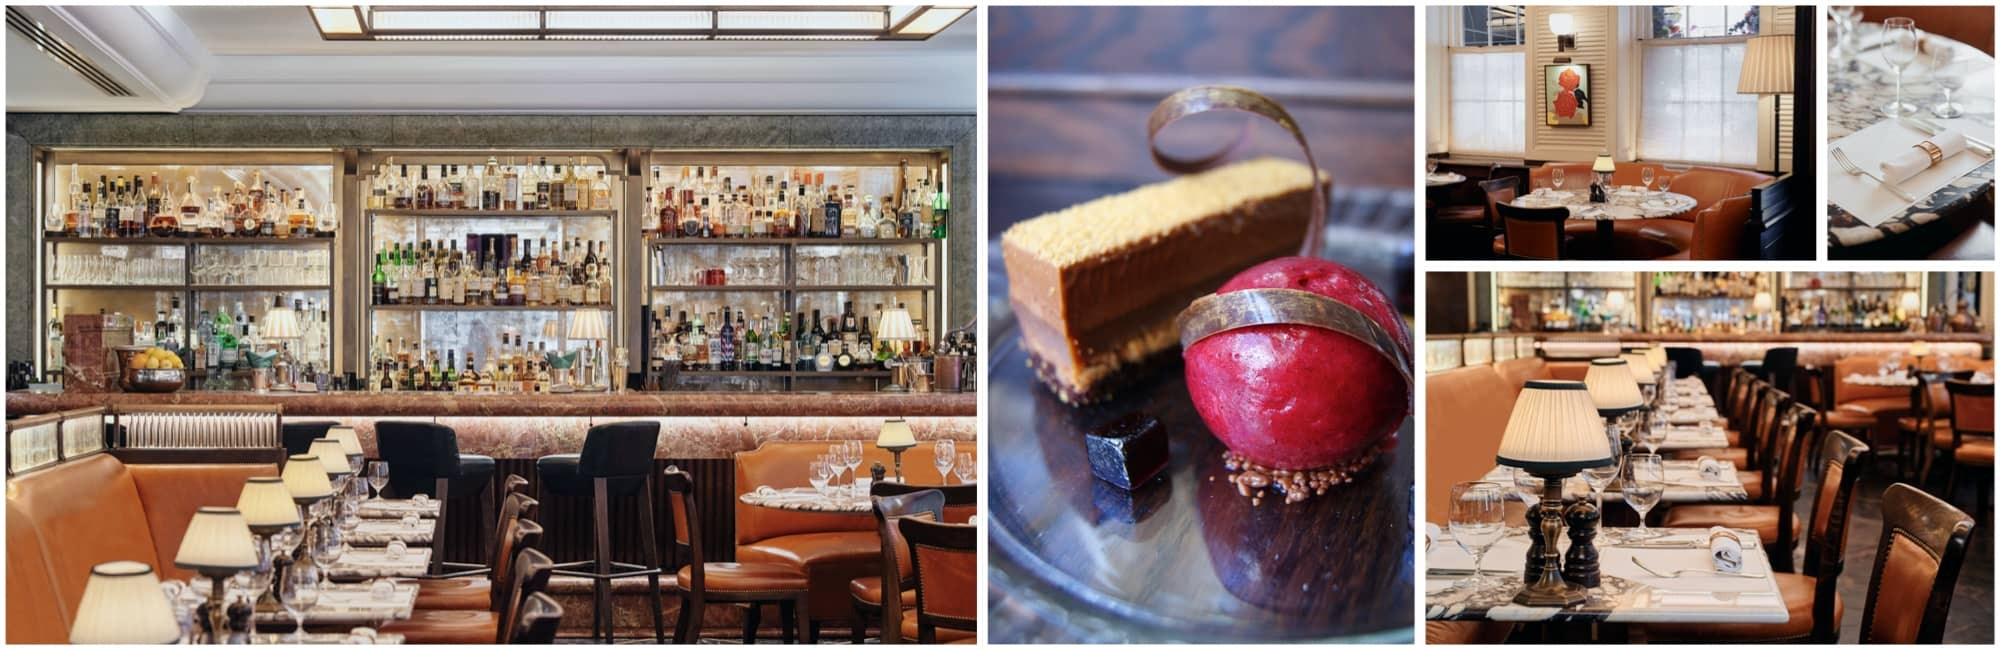 A collage of images of 34 Mayfair's dining room set for service and an image of one of 34's famous desserts.